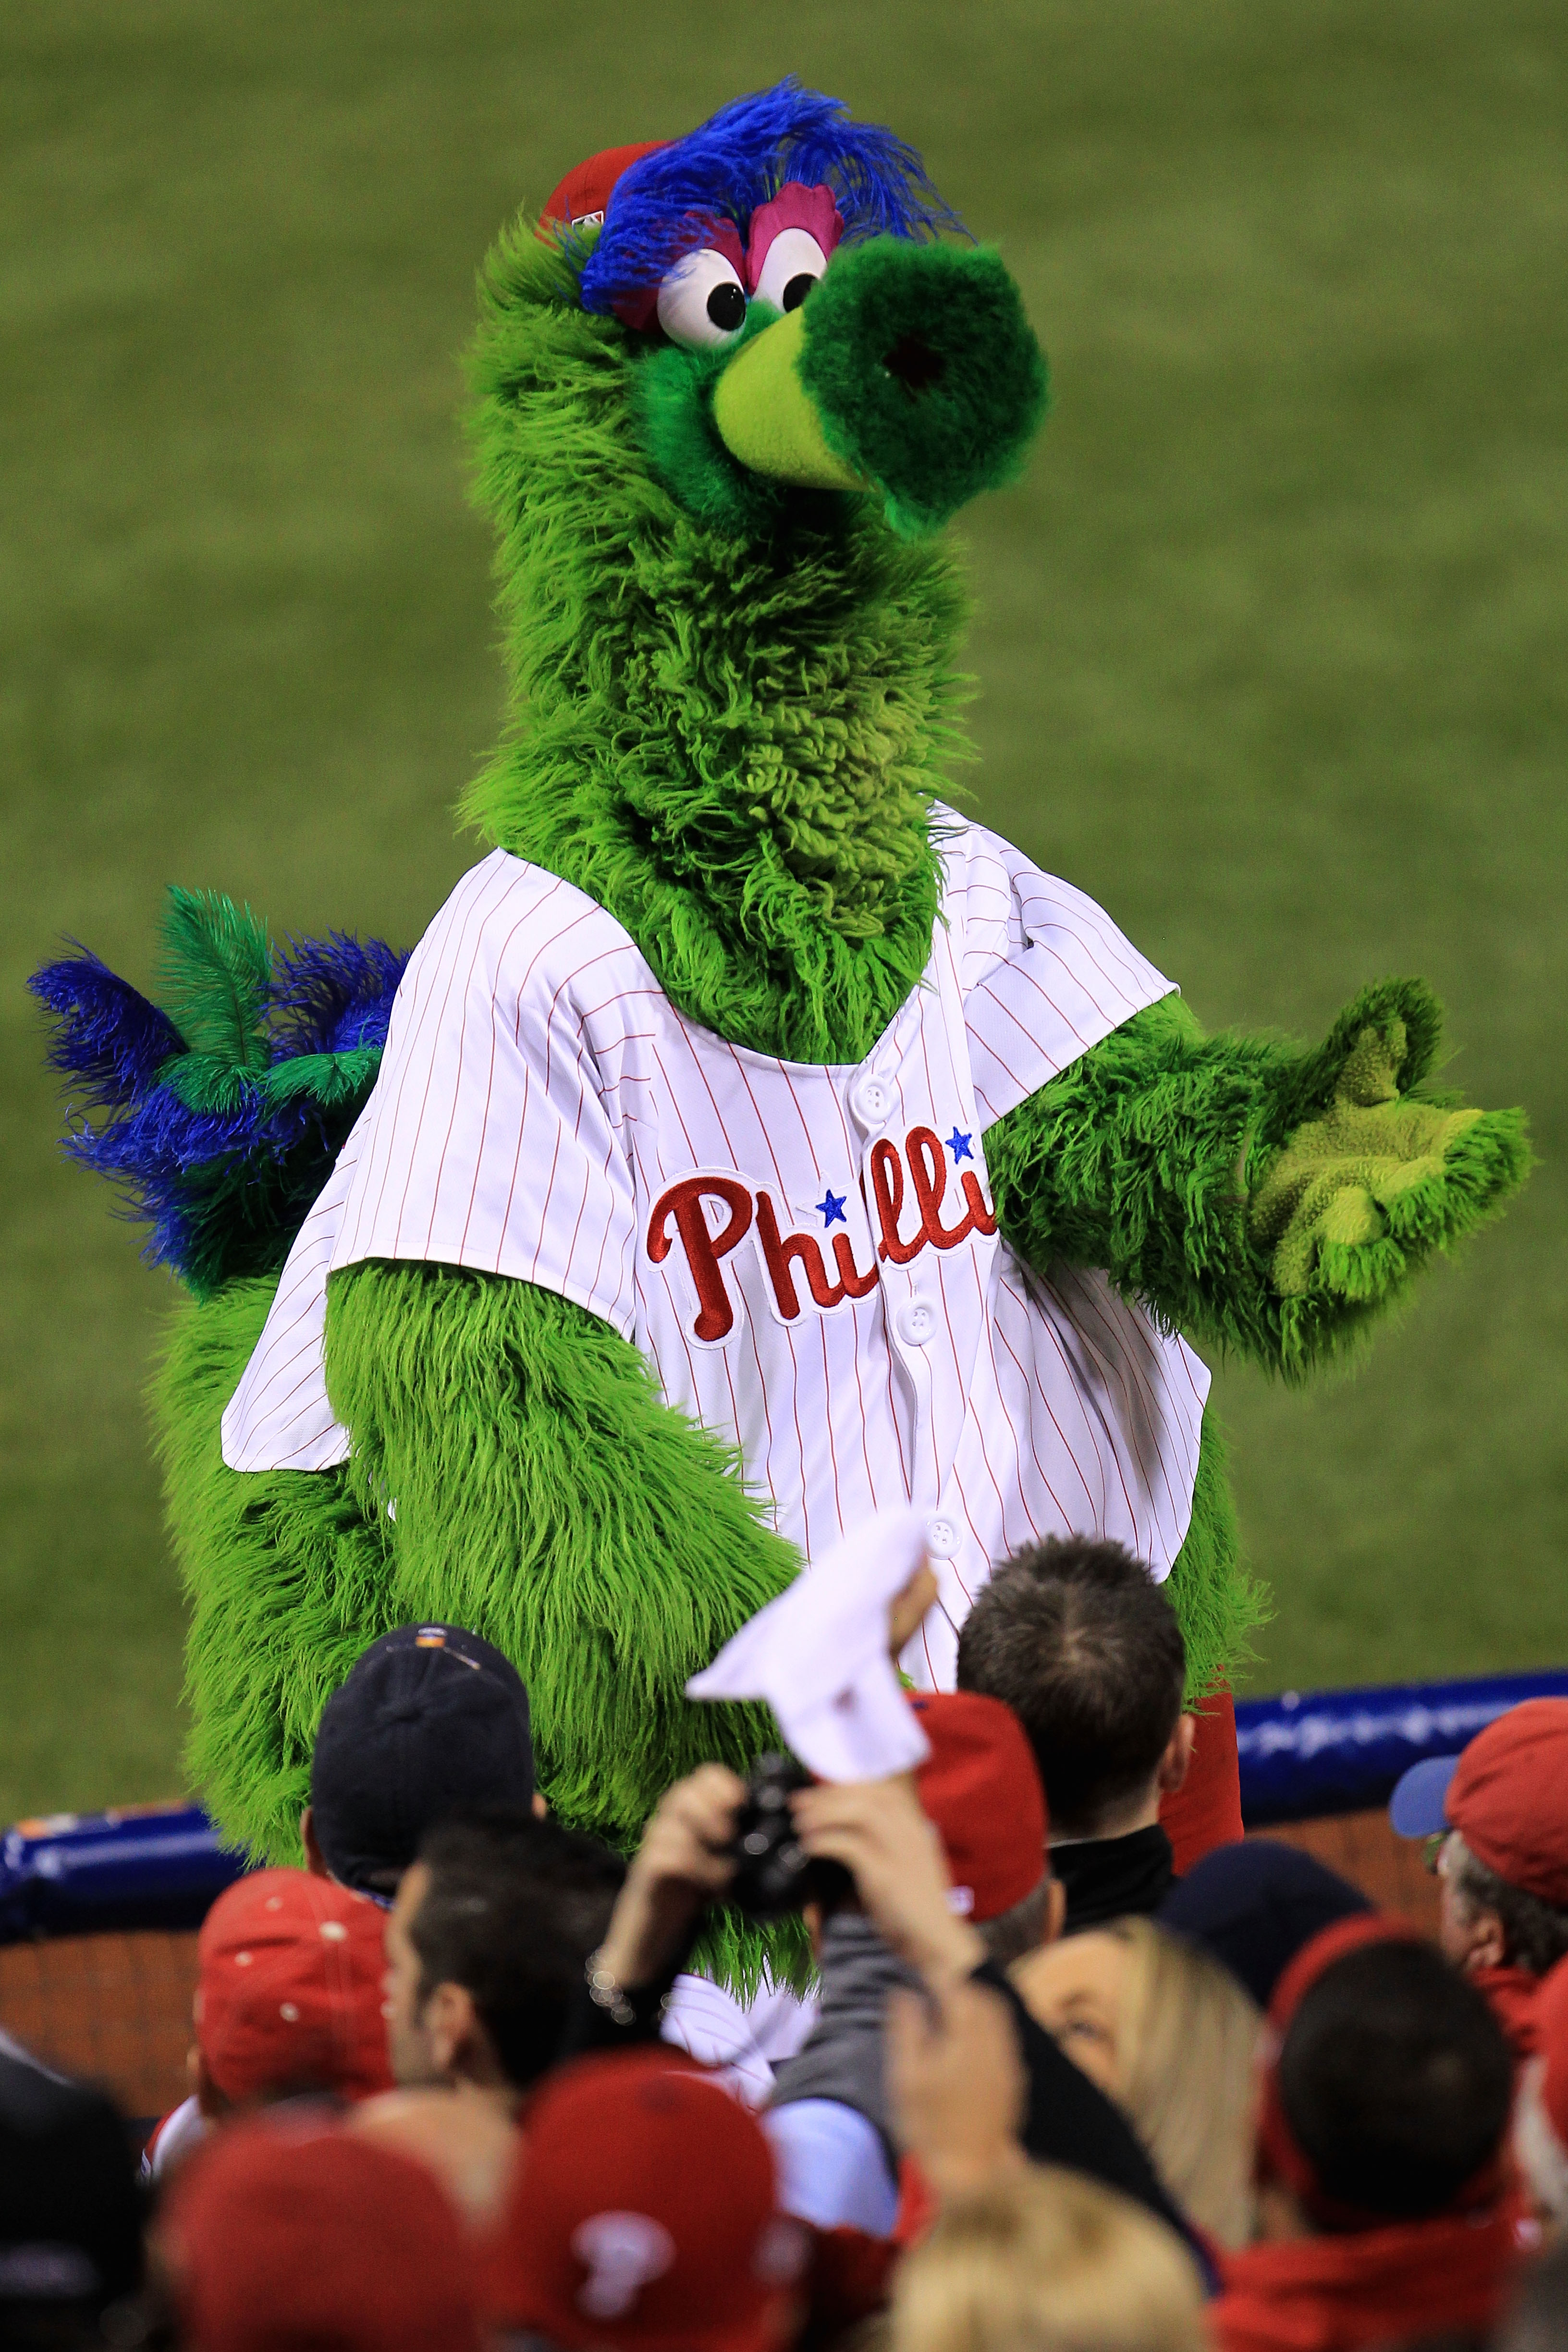 PHILADELPHIA - OCTOBER 17:  The Phillie Phanatic pumps up the crowd as the Phillies take on the San Francisco Giants in Game Two of the NLCS during the 2010 MLB Playoffs at Citizens Bank Park on October 17, 2010 in Philadelphia, Pennsylvania.  (Photo by C